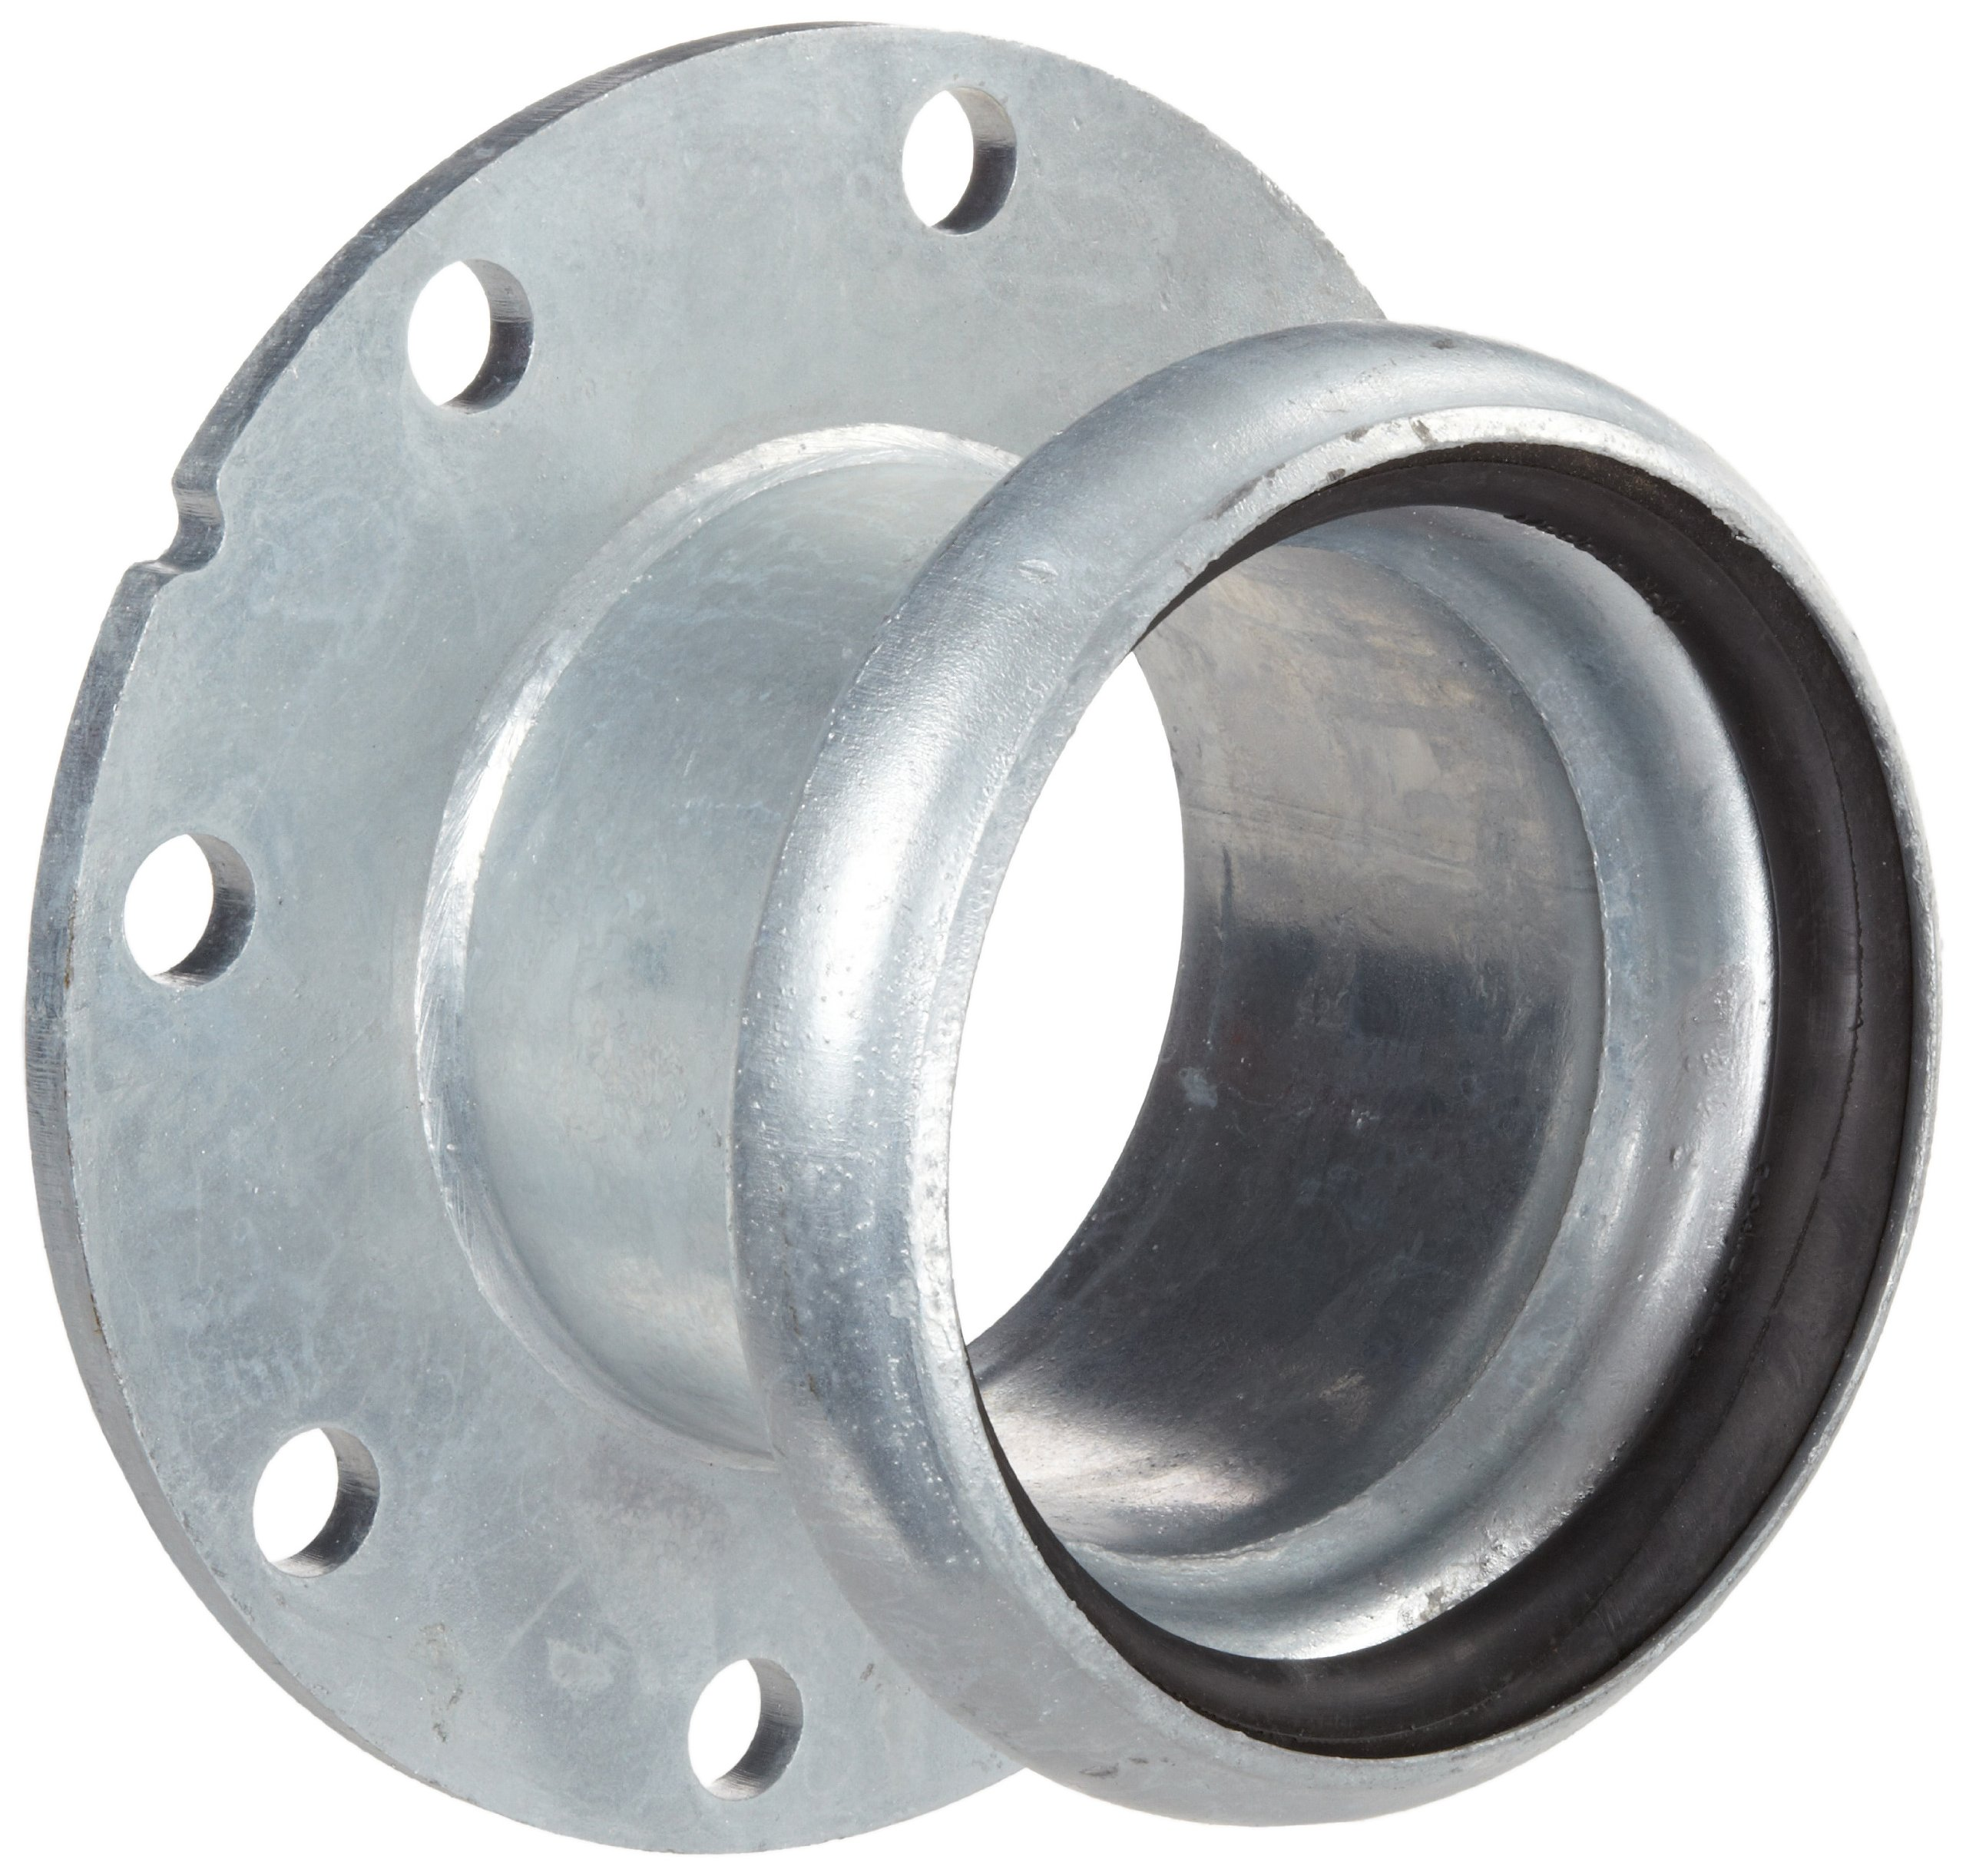 Dixon FC3146 Galvanized Steel Type B Shank/Water Quick-Connect Fitting, Coupler with Gasket, 6'' Female Coupling x 150 ASA Flange